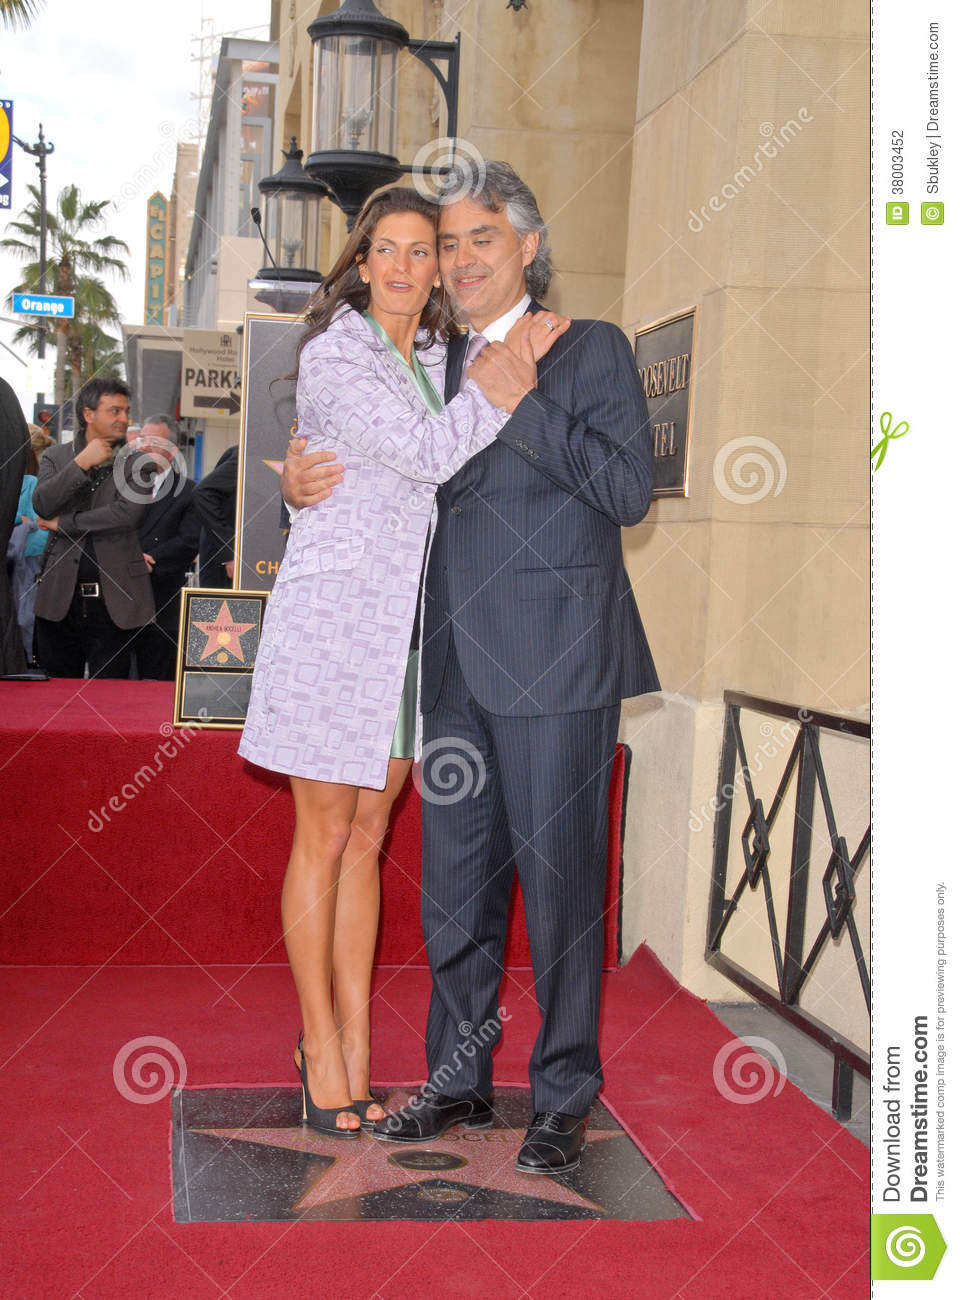 Veronica berti and andrea bocelli at the induction ceremony for andrea